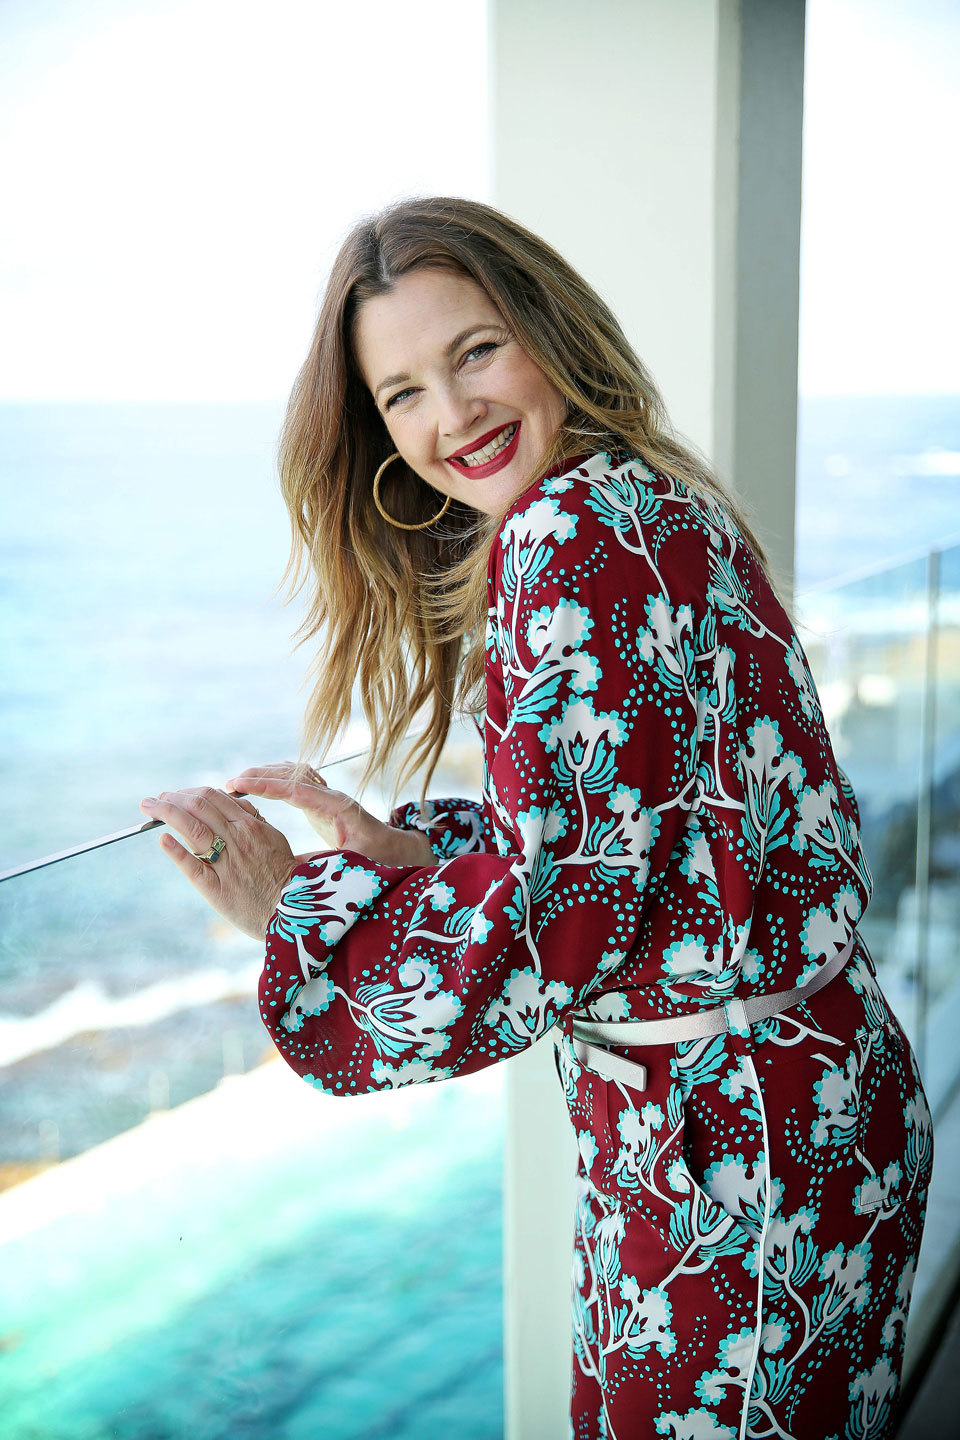 Drew Barrymore smiling while standing on a balcony overlooking the sea